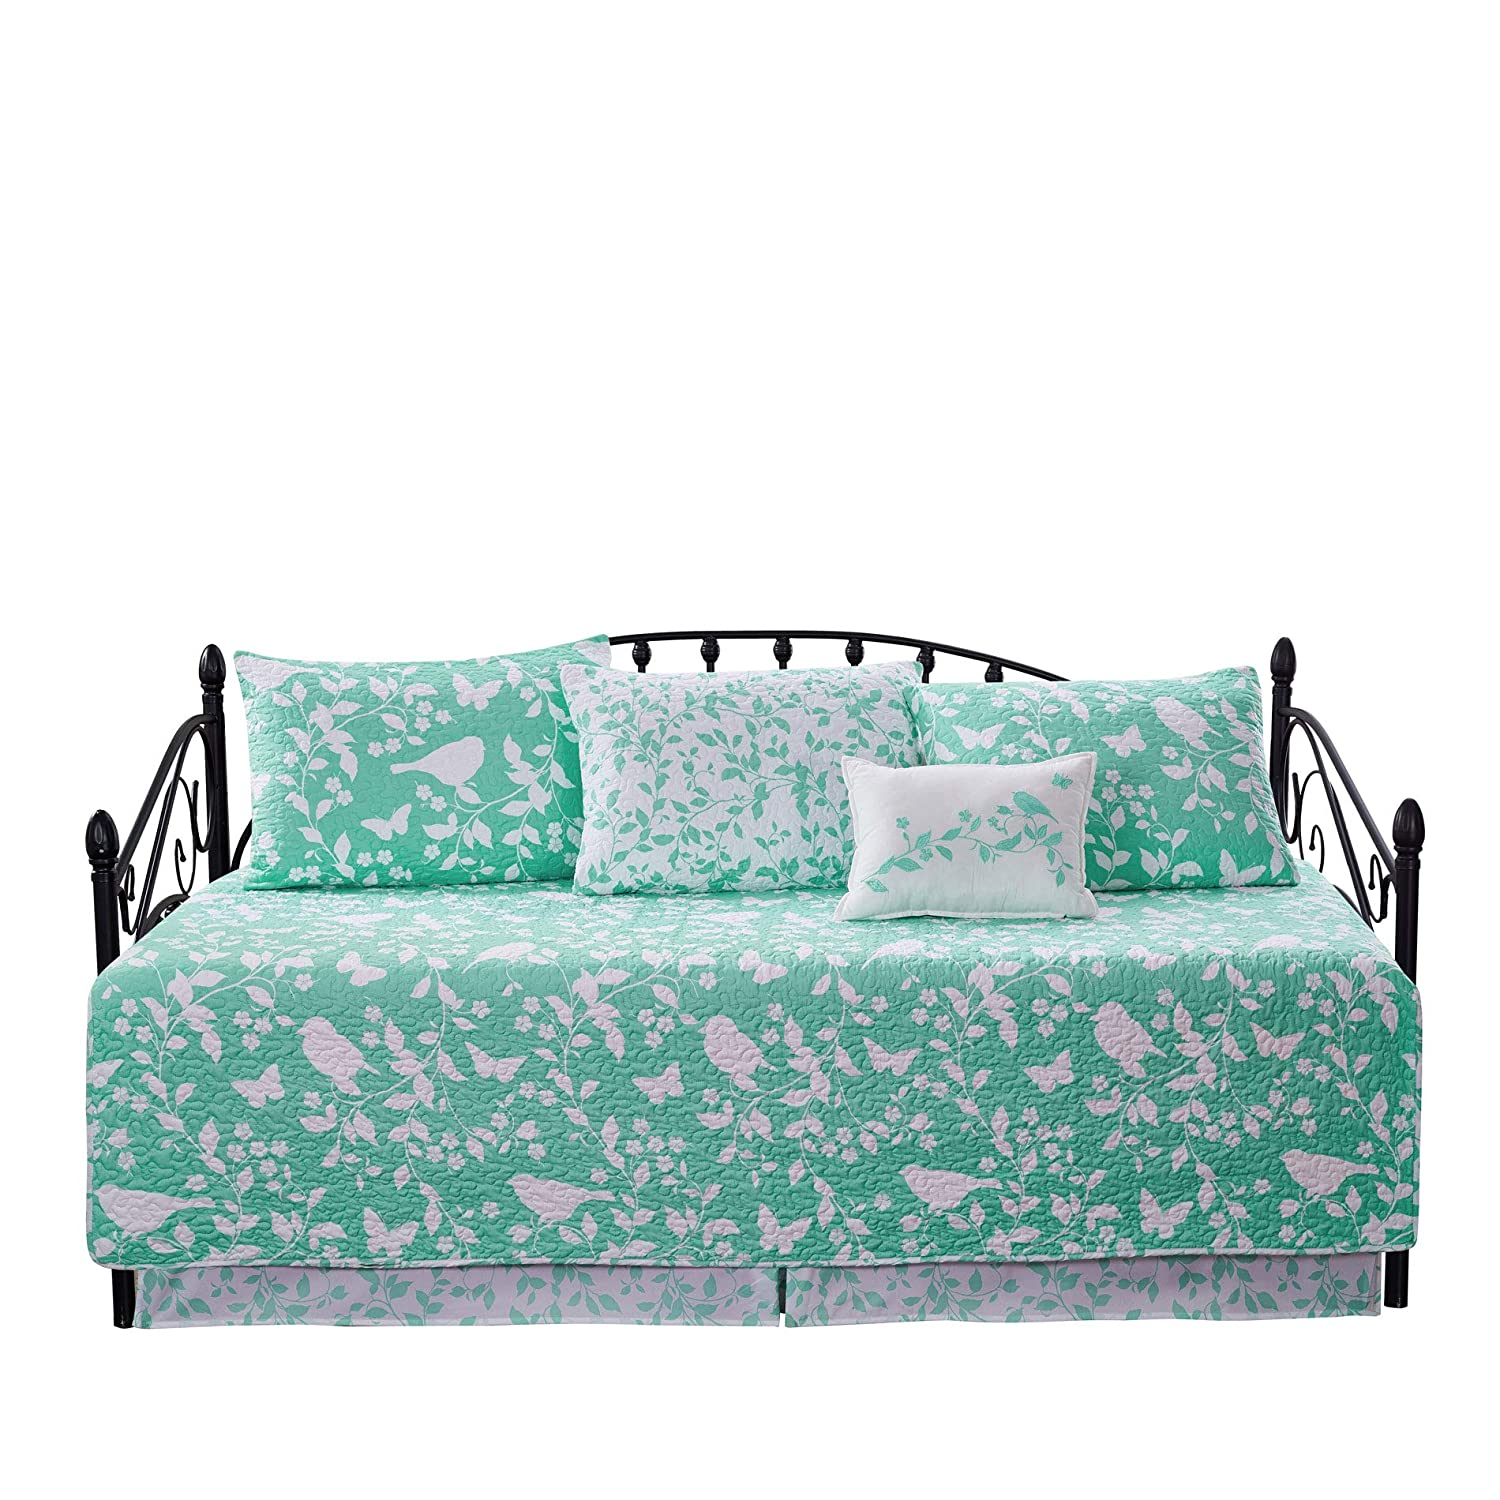 """Home Soft Things Serenta Birdsong 6 Piece Quilted Daybed Set, Teal, 75"""" x 39"""""""